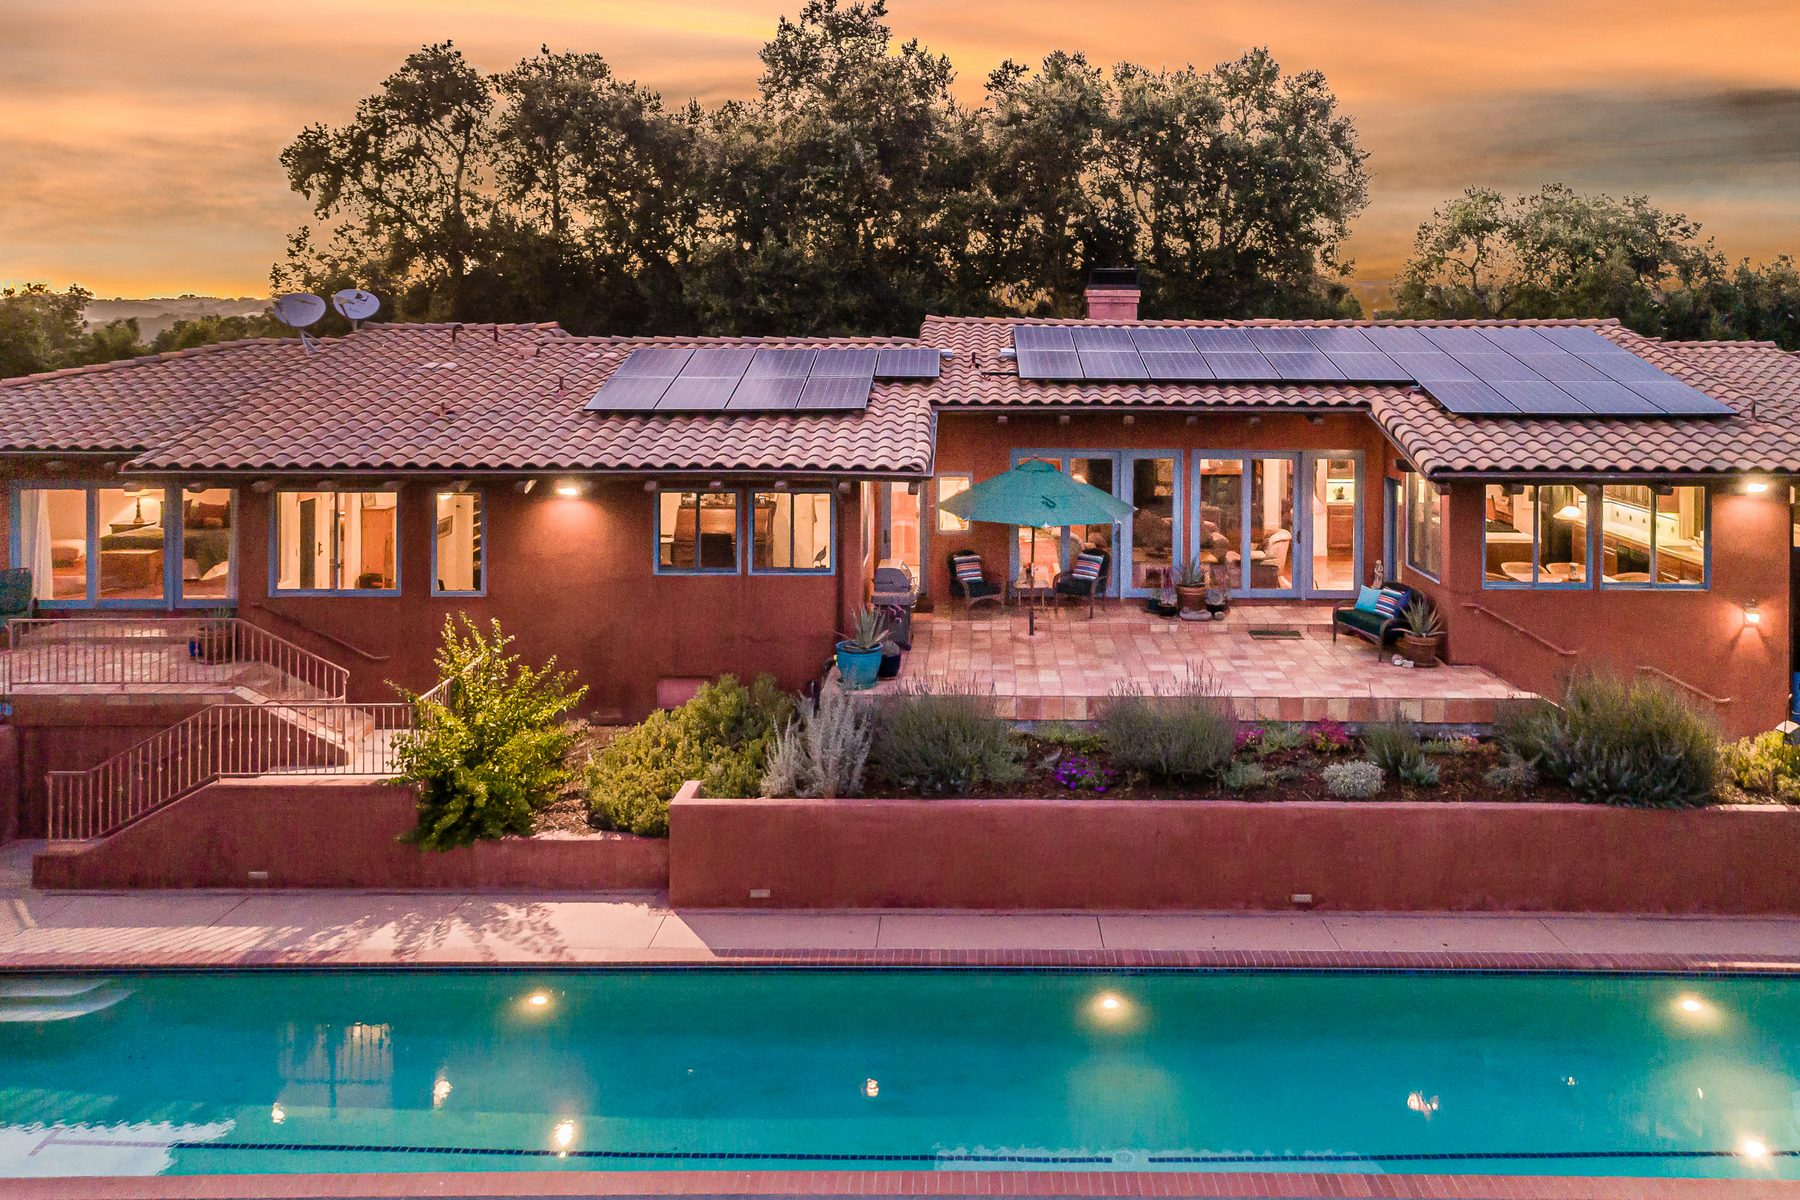 Single Family Homes for Sale at Spanish-style Villa & Vineyard on 30+/- Acres 3432 Las Tablas Wiliow Creek Paso Robles, California 93446 United States